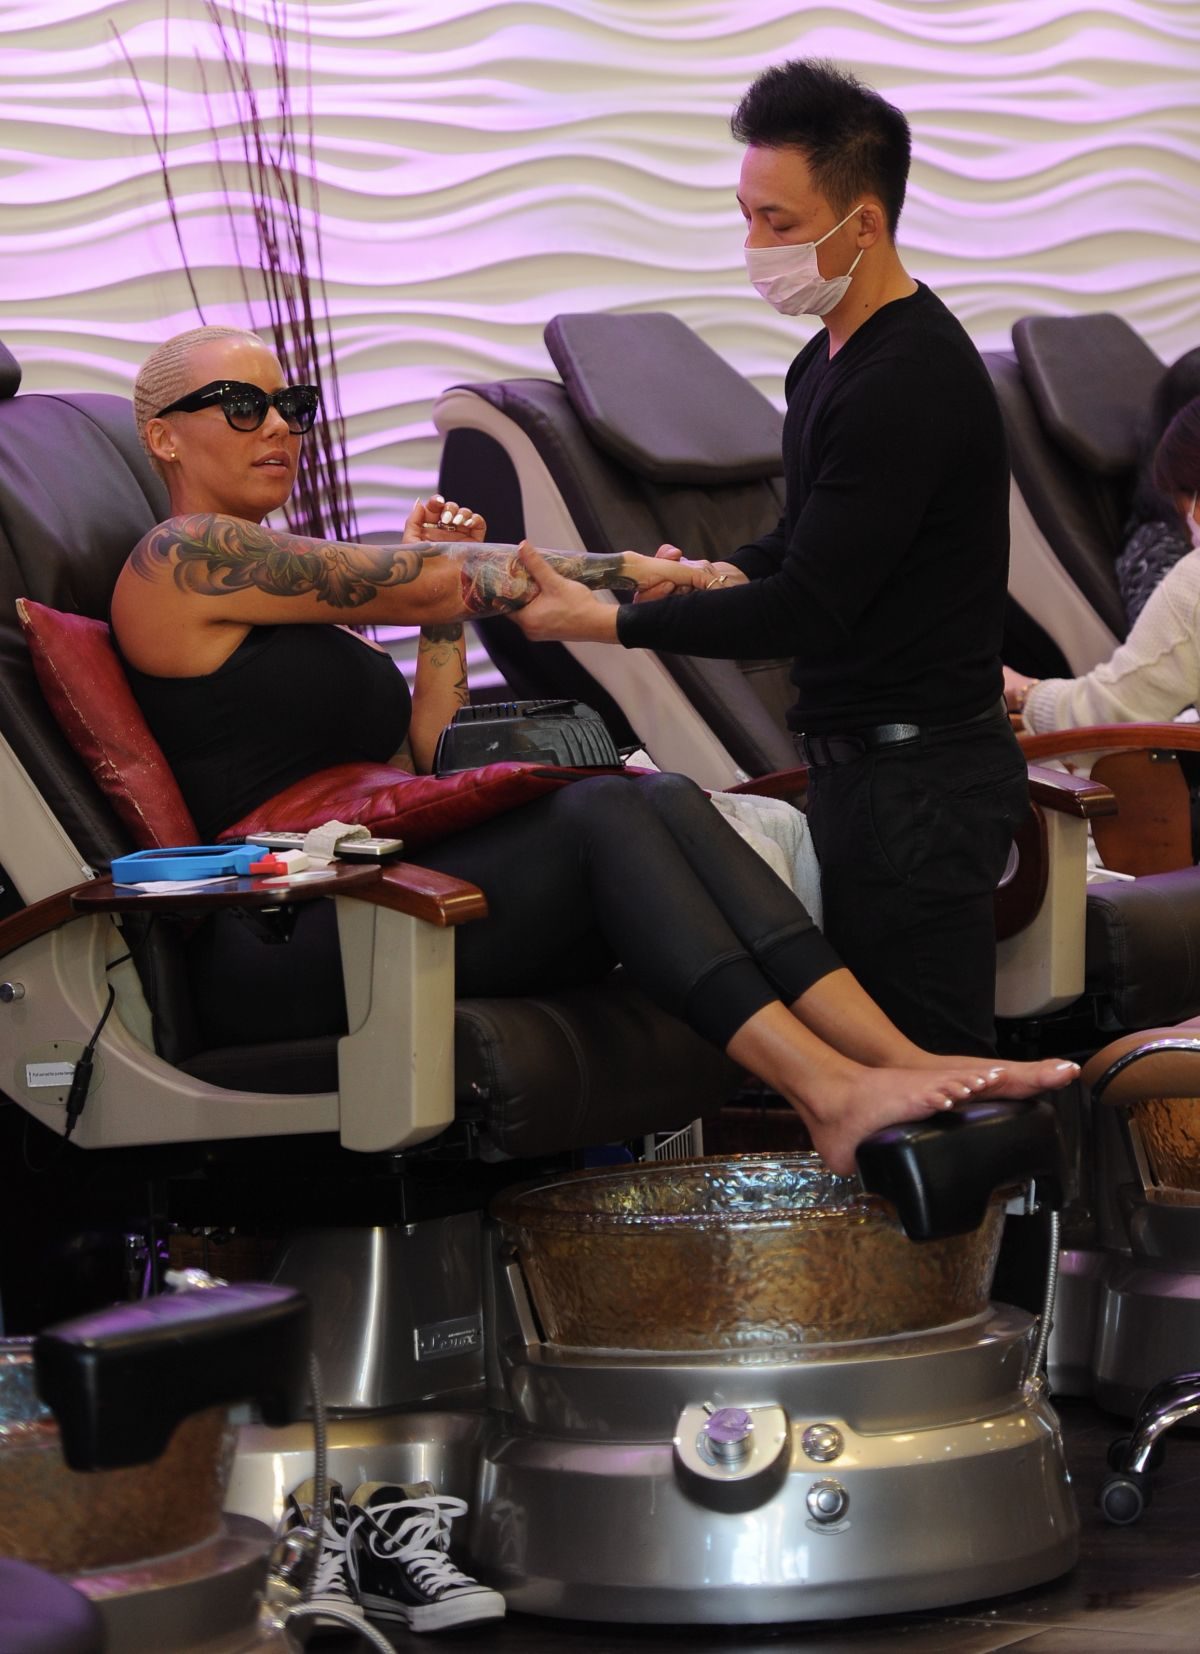 AMBER ROSE at a Nail Salon in Los Angeles 12/29/2015 - HawtCelebs